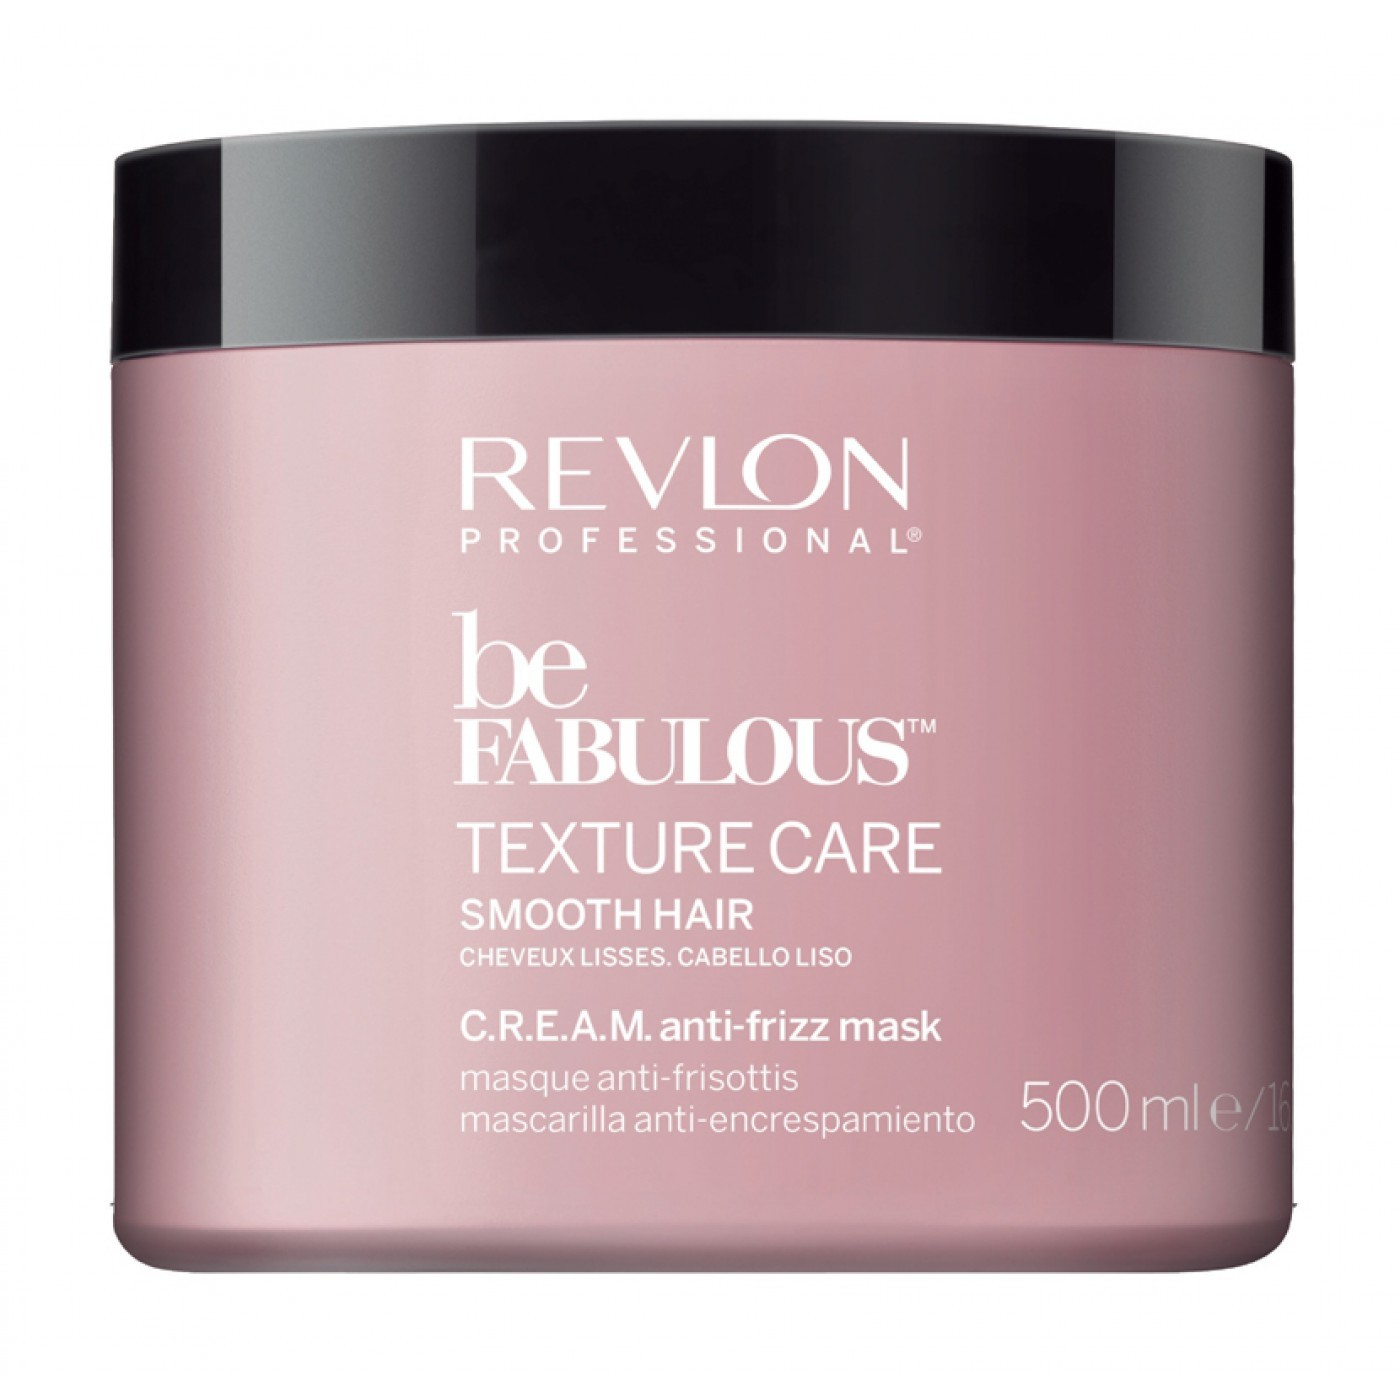 REVLON Be Fabulous C.R.E.A.M. Anti-Frizz Mask 500 ml